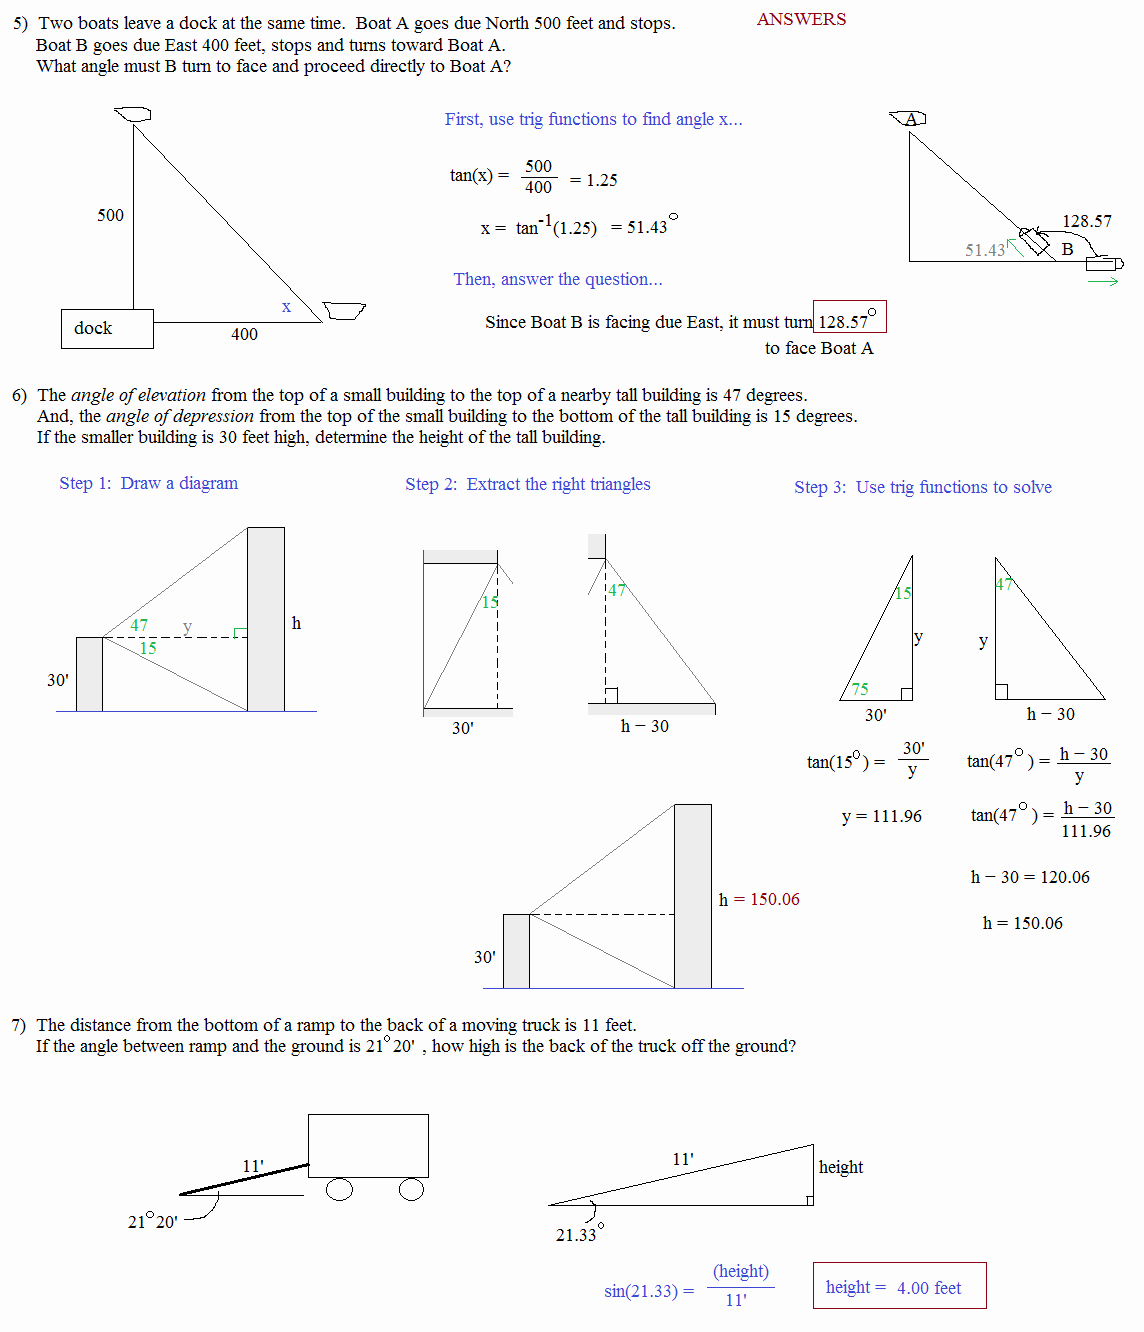 Trigonometry Word Problems Worksheet Answers Inspirational Math Plane Trigonometry Word Problems